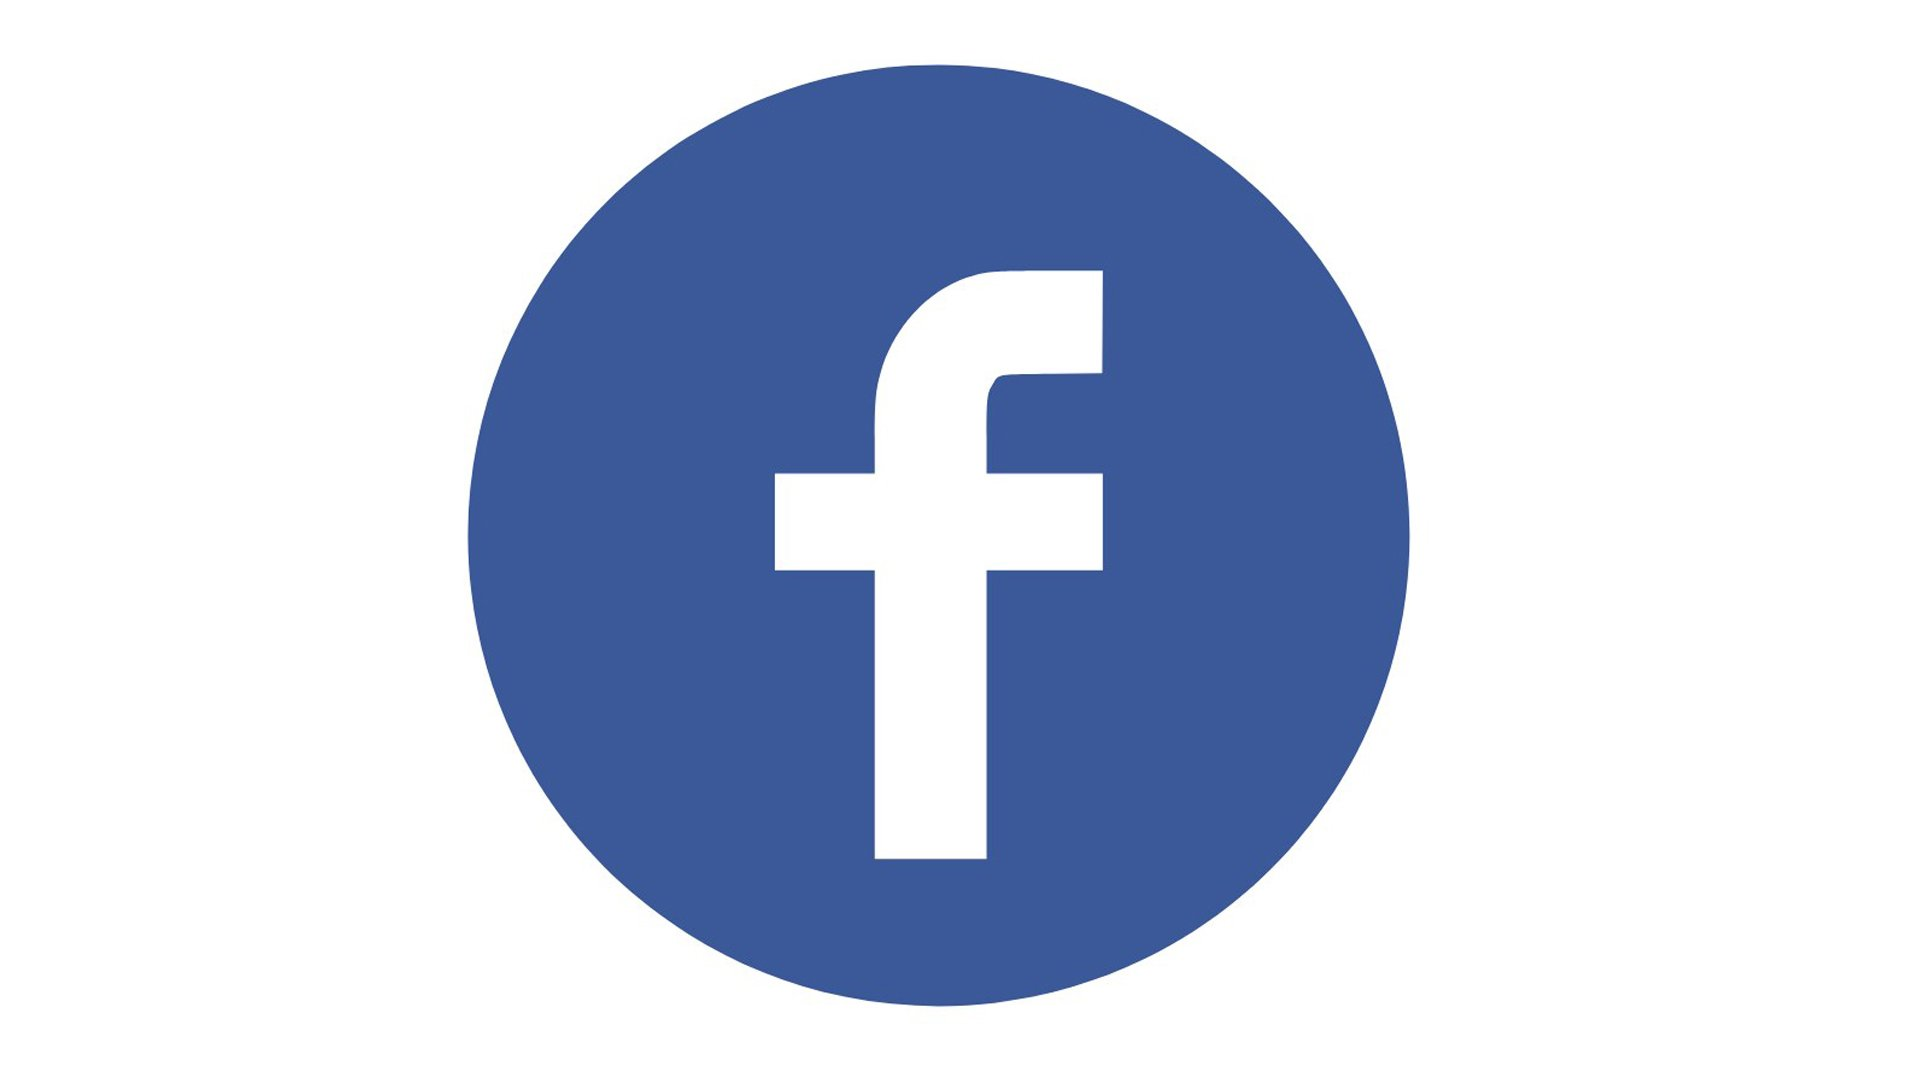 facebook logo facebook symbol meaning history and evolution